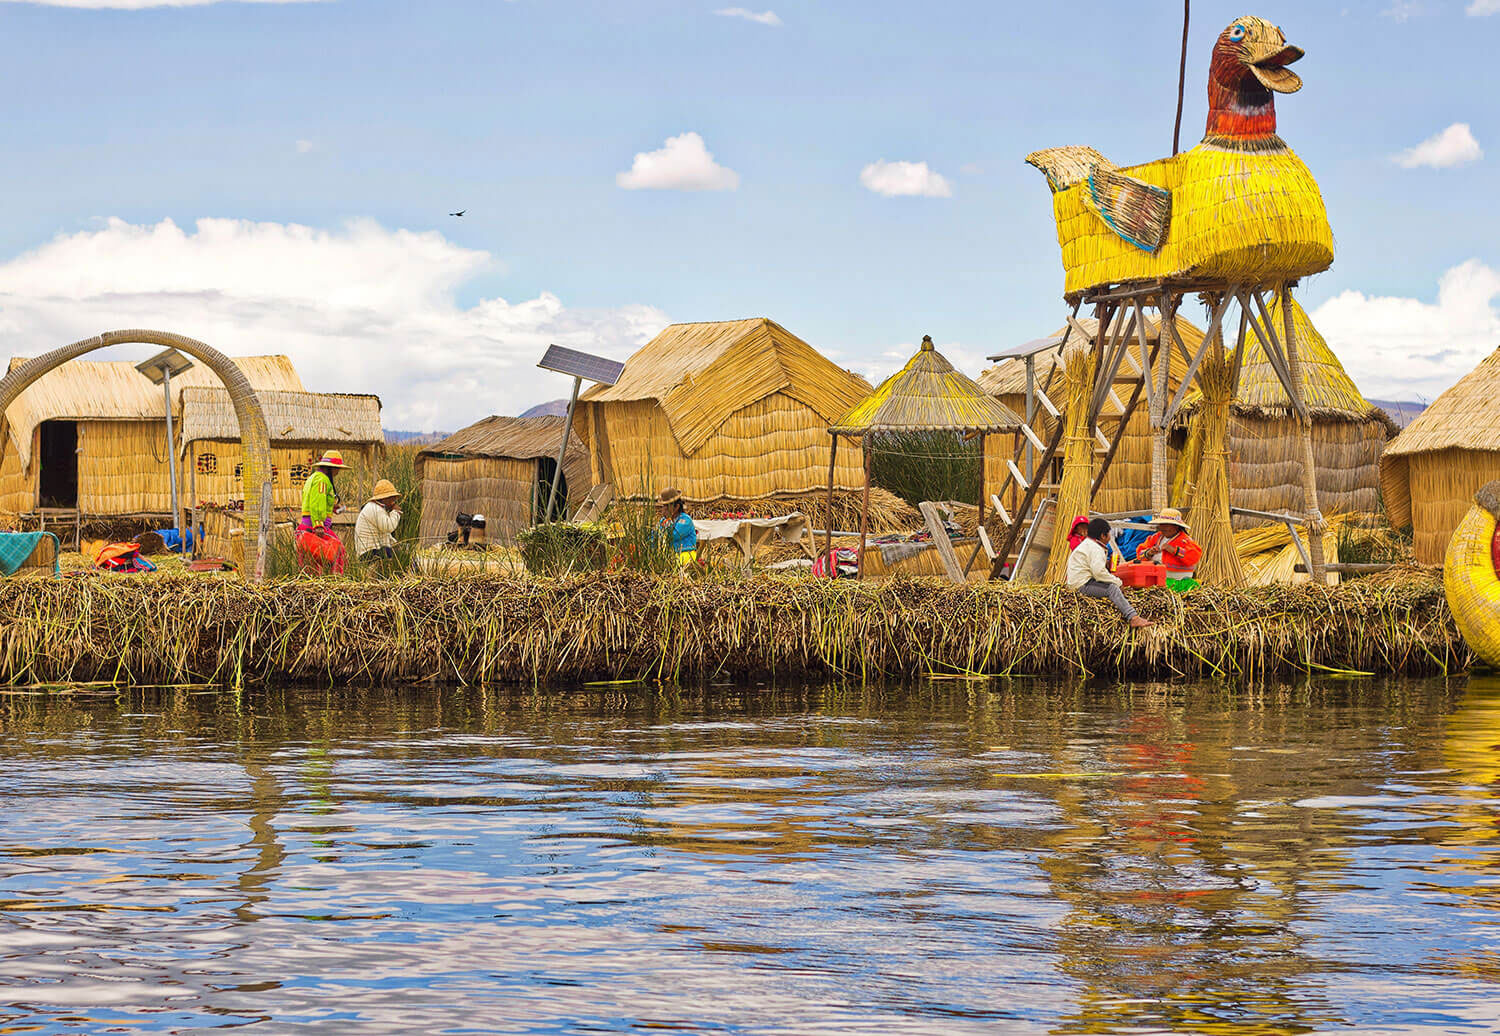 The floating Uros Islands located in Lake Titicaca